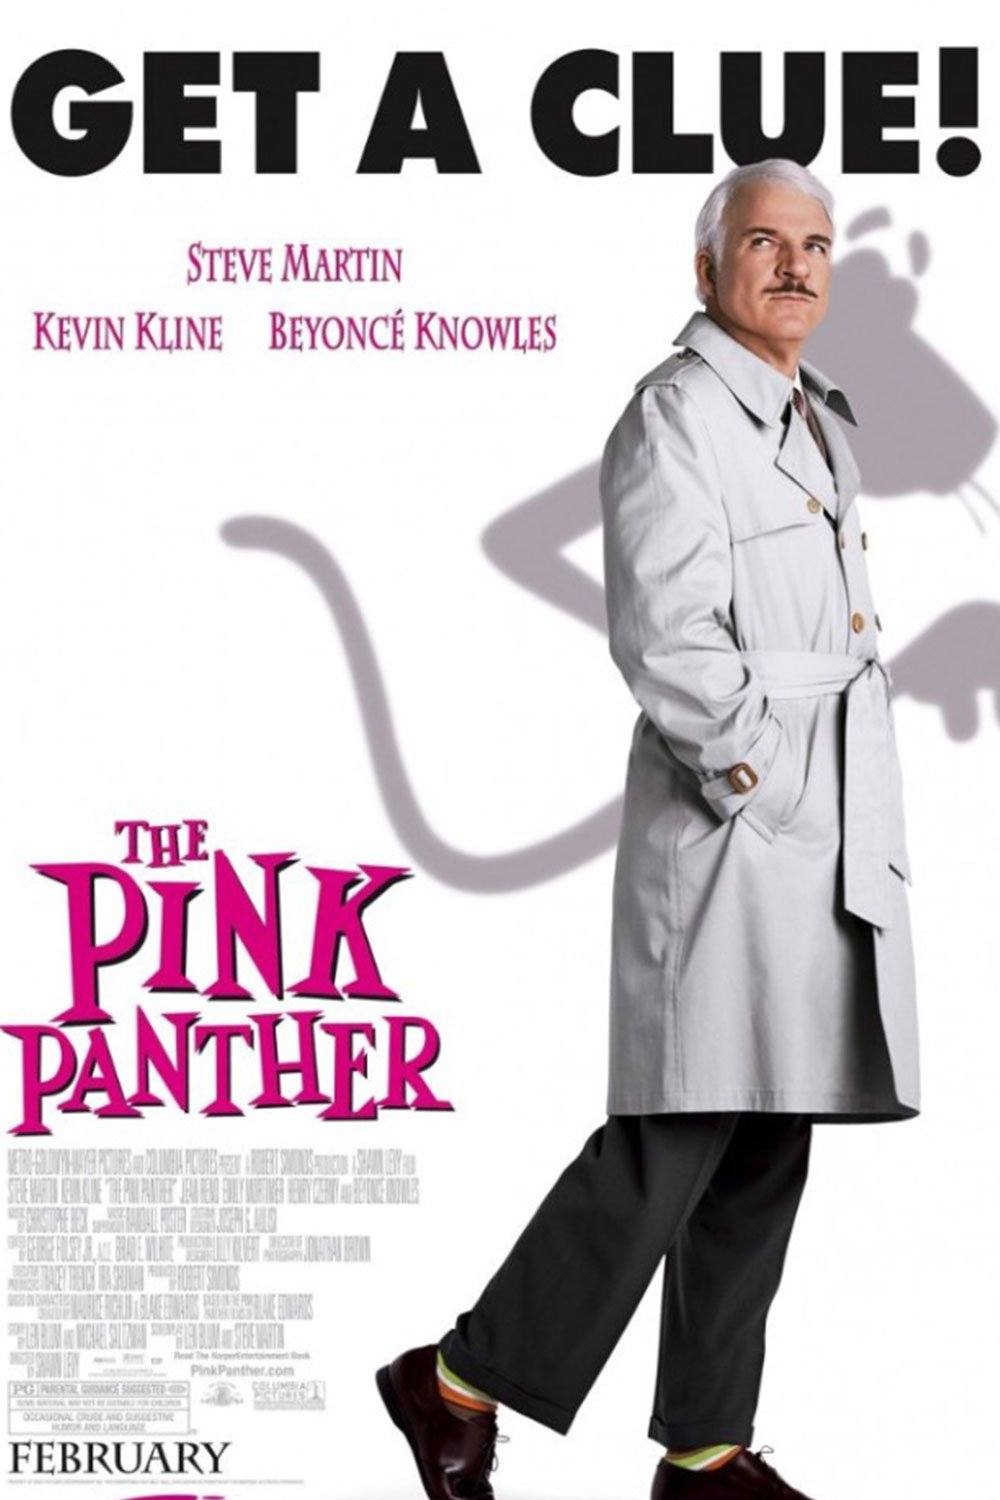 Pink Panther, Get A Clue, Andria Blackman, Andrea Blackman, Andria Lee Murphy, Andria Murphy, Model Lifestyle Model, The Way Way Back, My Best Friend's Girl, Chappaquiddick, Ted Kennedy, Joan Kennedy, Actress, Actor, American Actress, Stunt Woman, Stunt Double, Icon Recreation Project, Dana Farber, Jimmy Fund, Marilyn, Claudia, Cindy, Olivia, Audrey, Madonna, Ursula, Grace